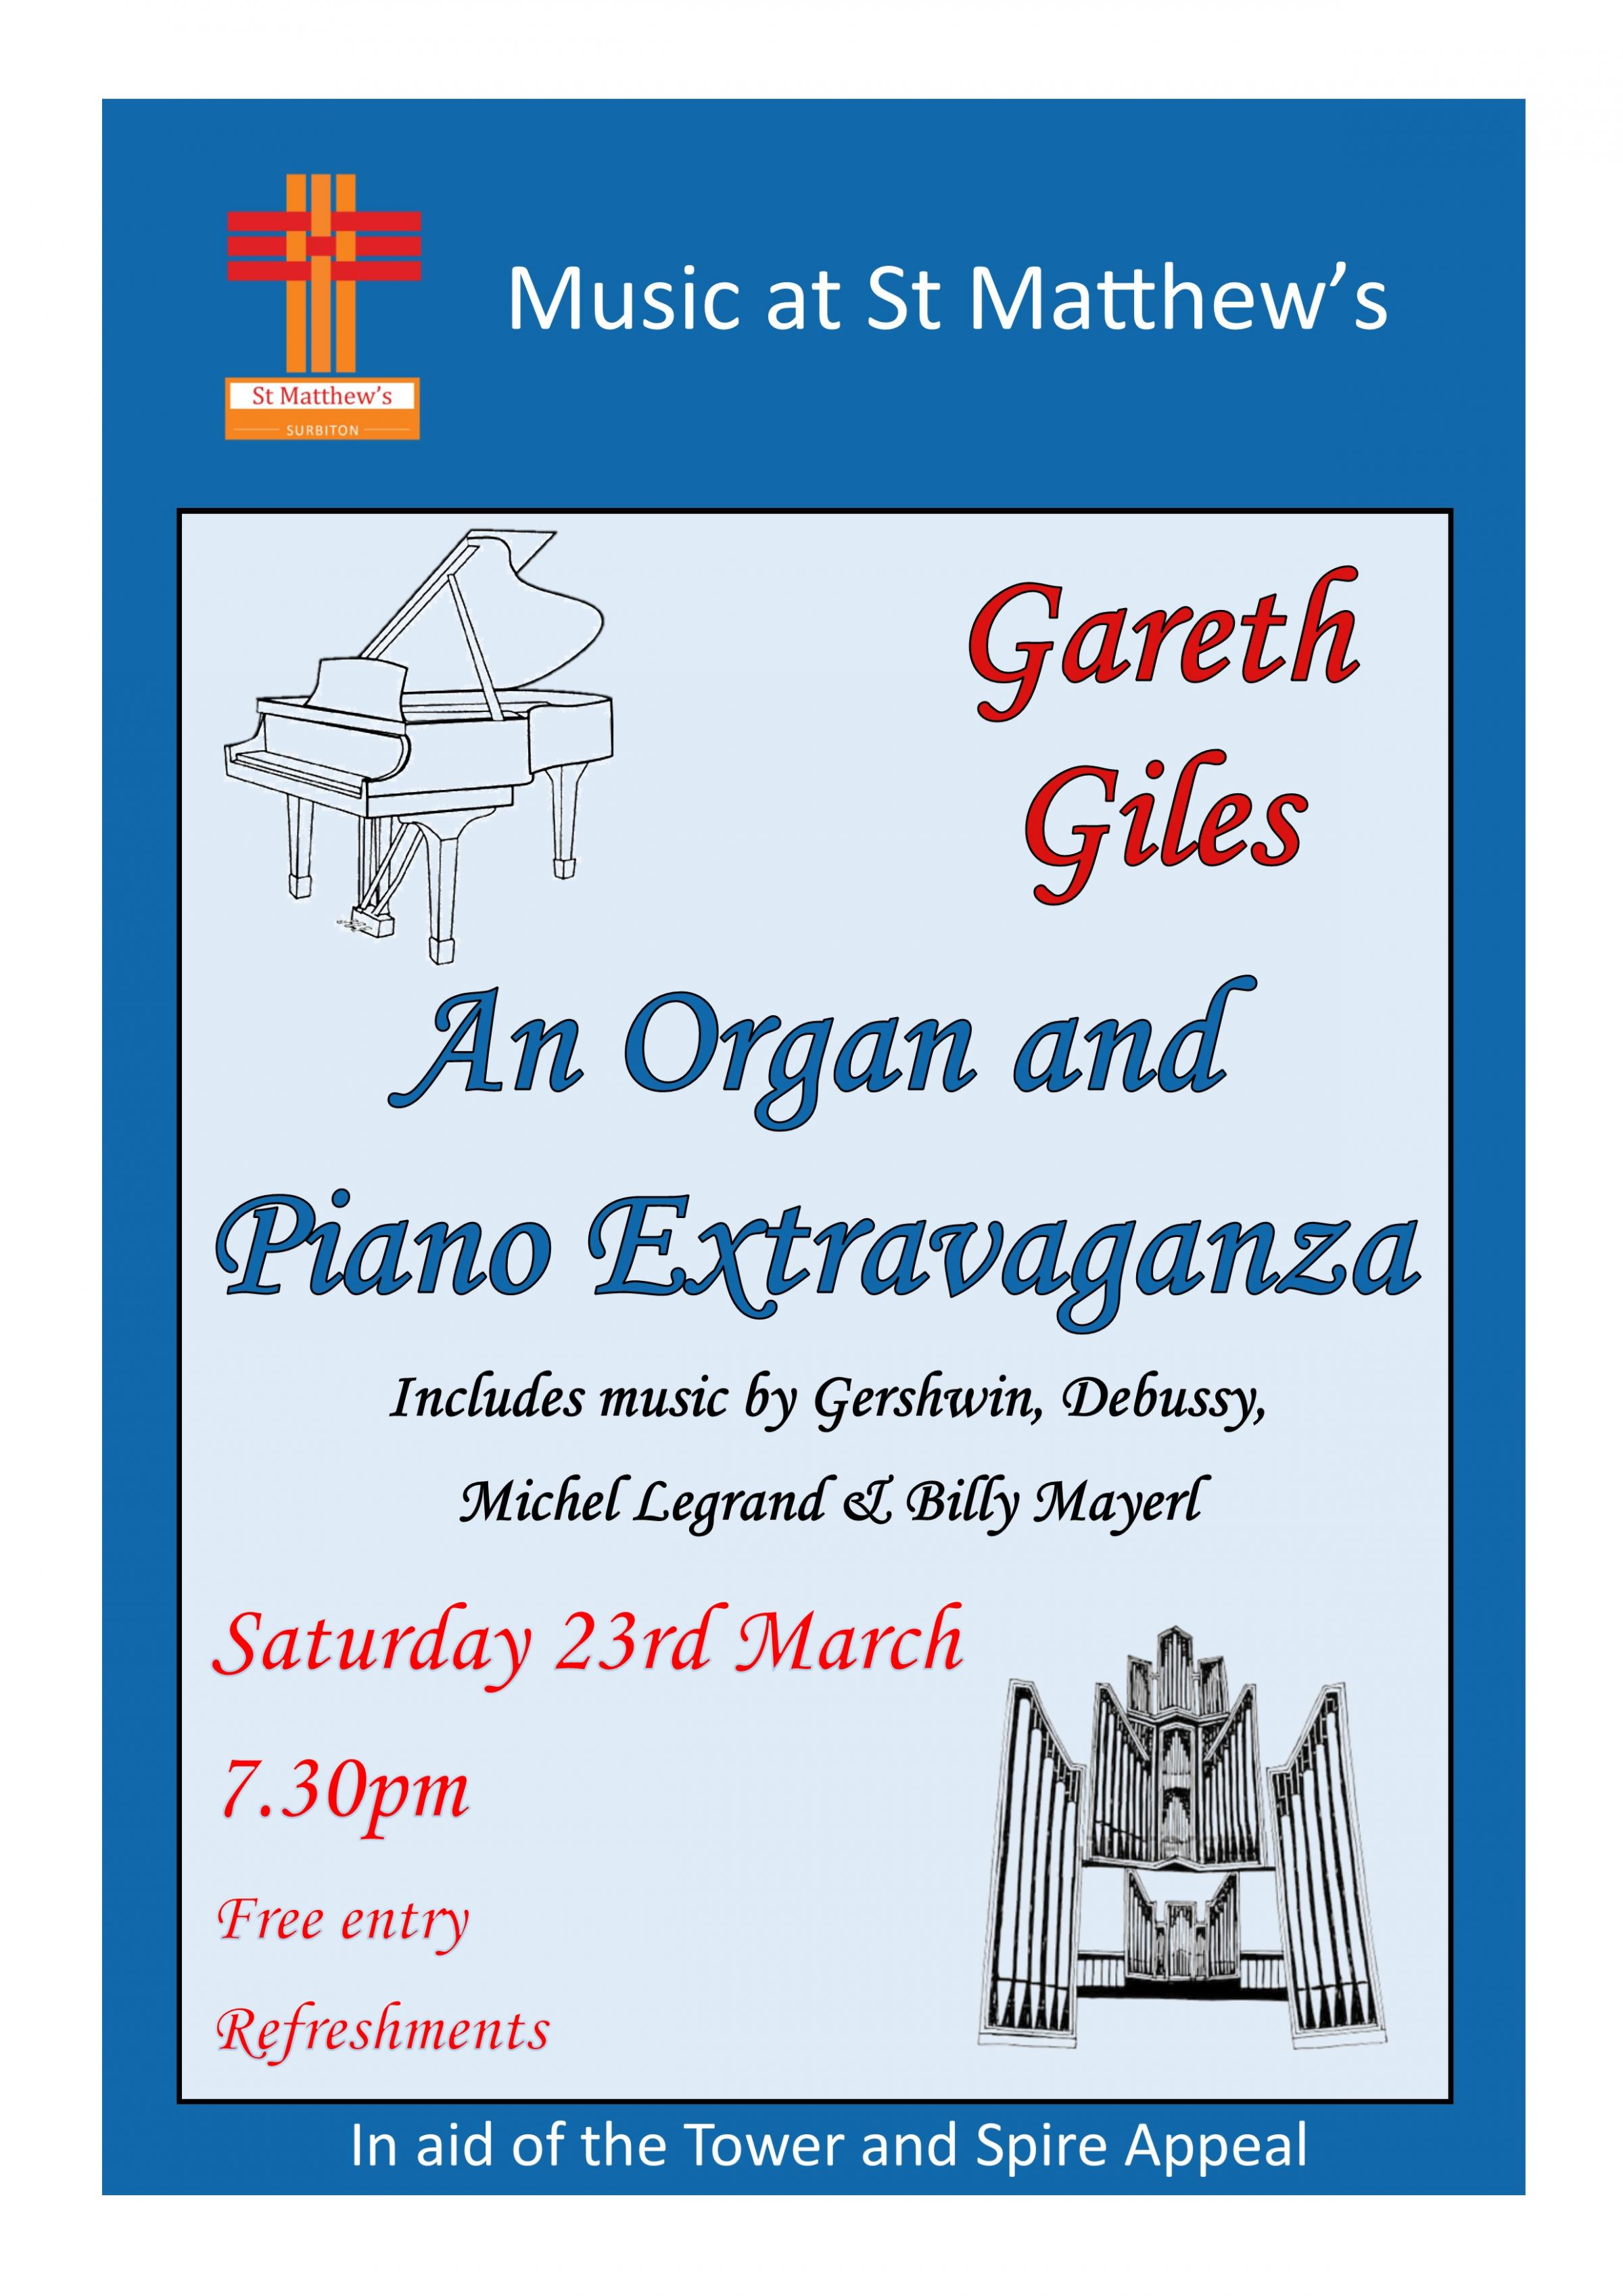 Organ and piano recital